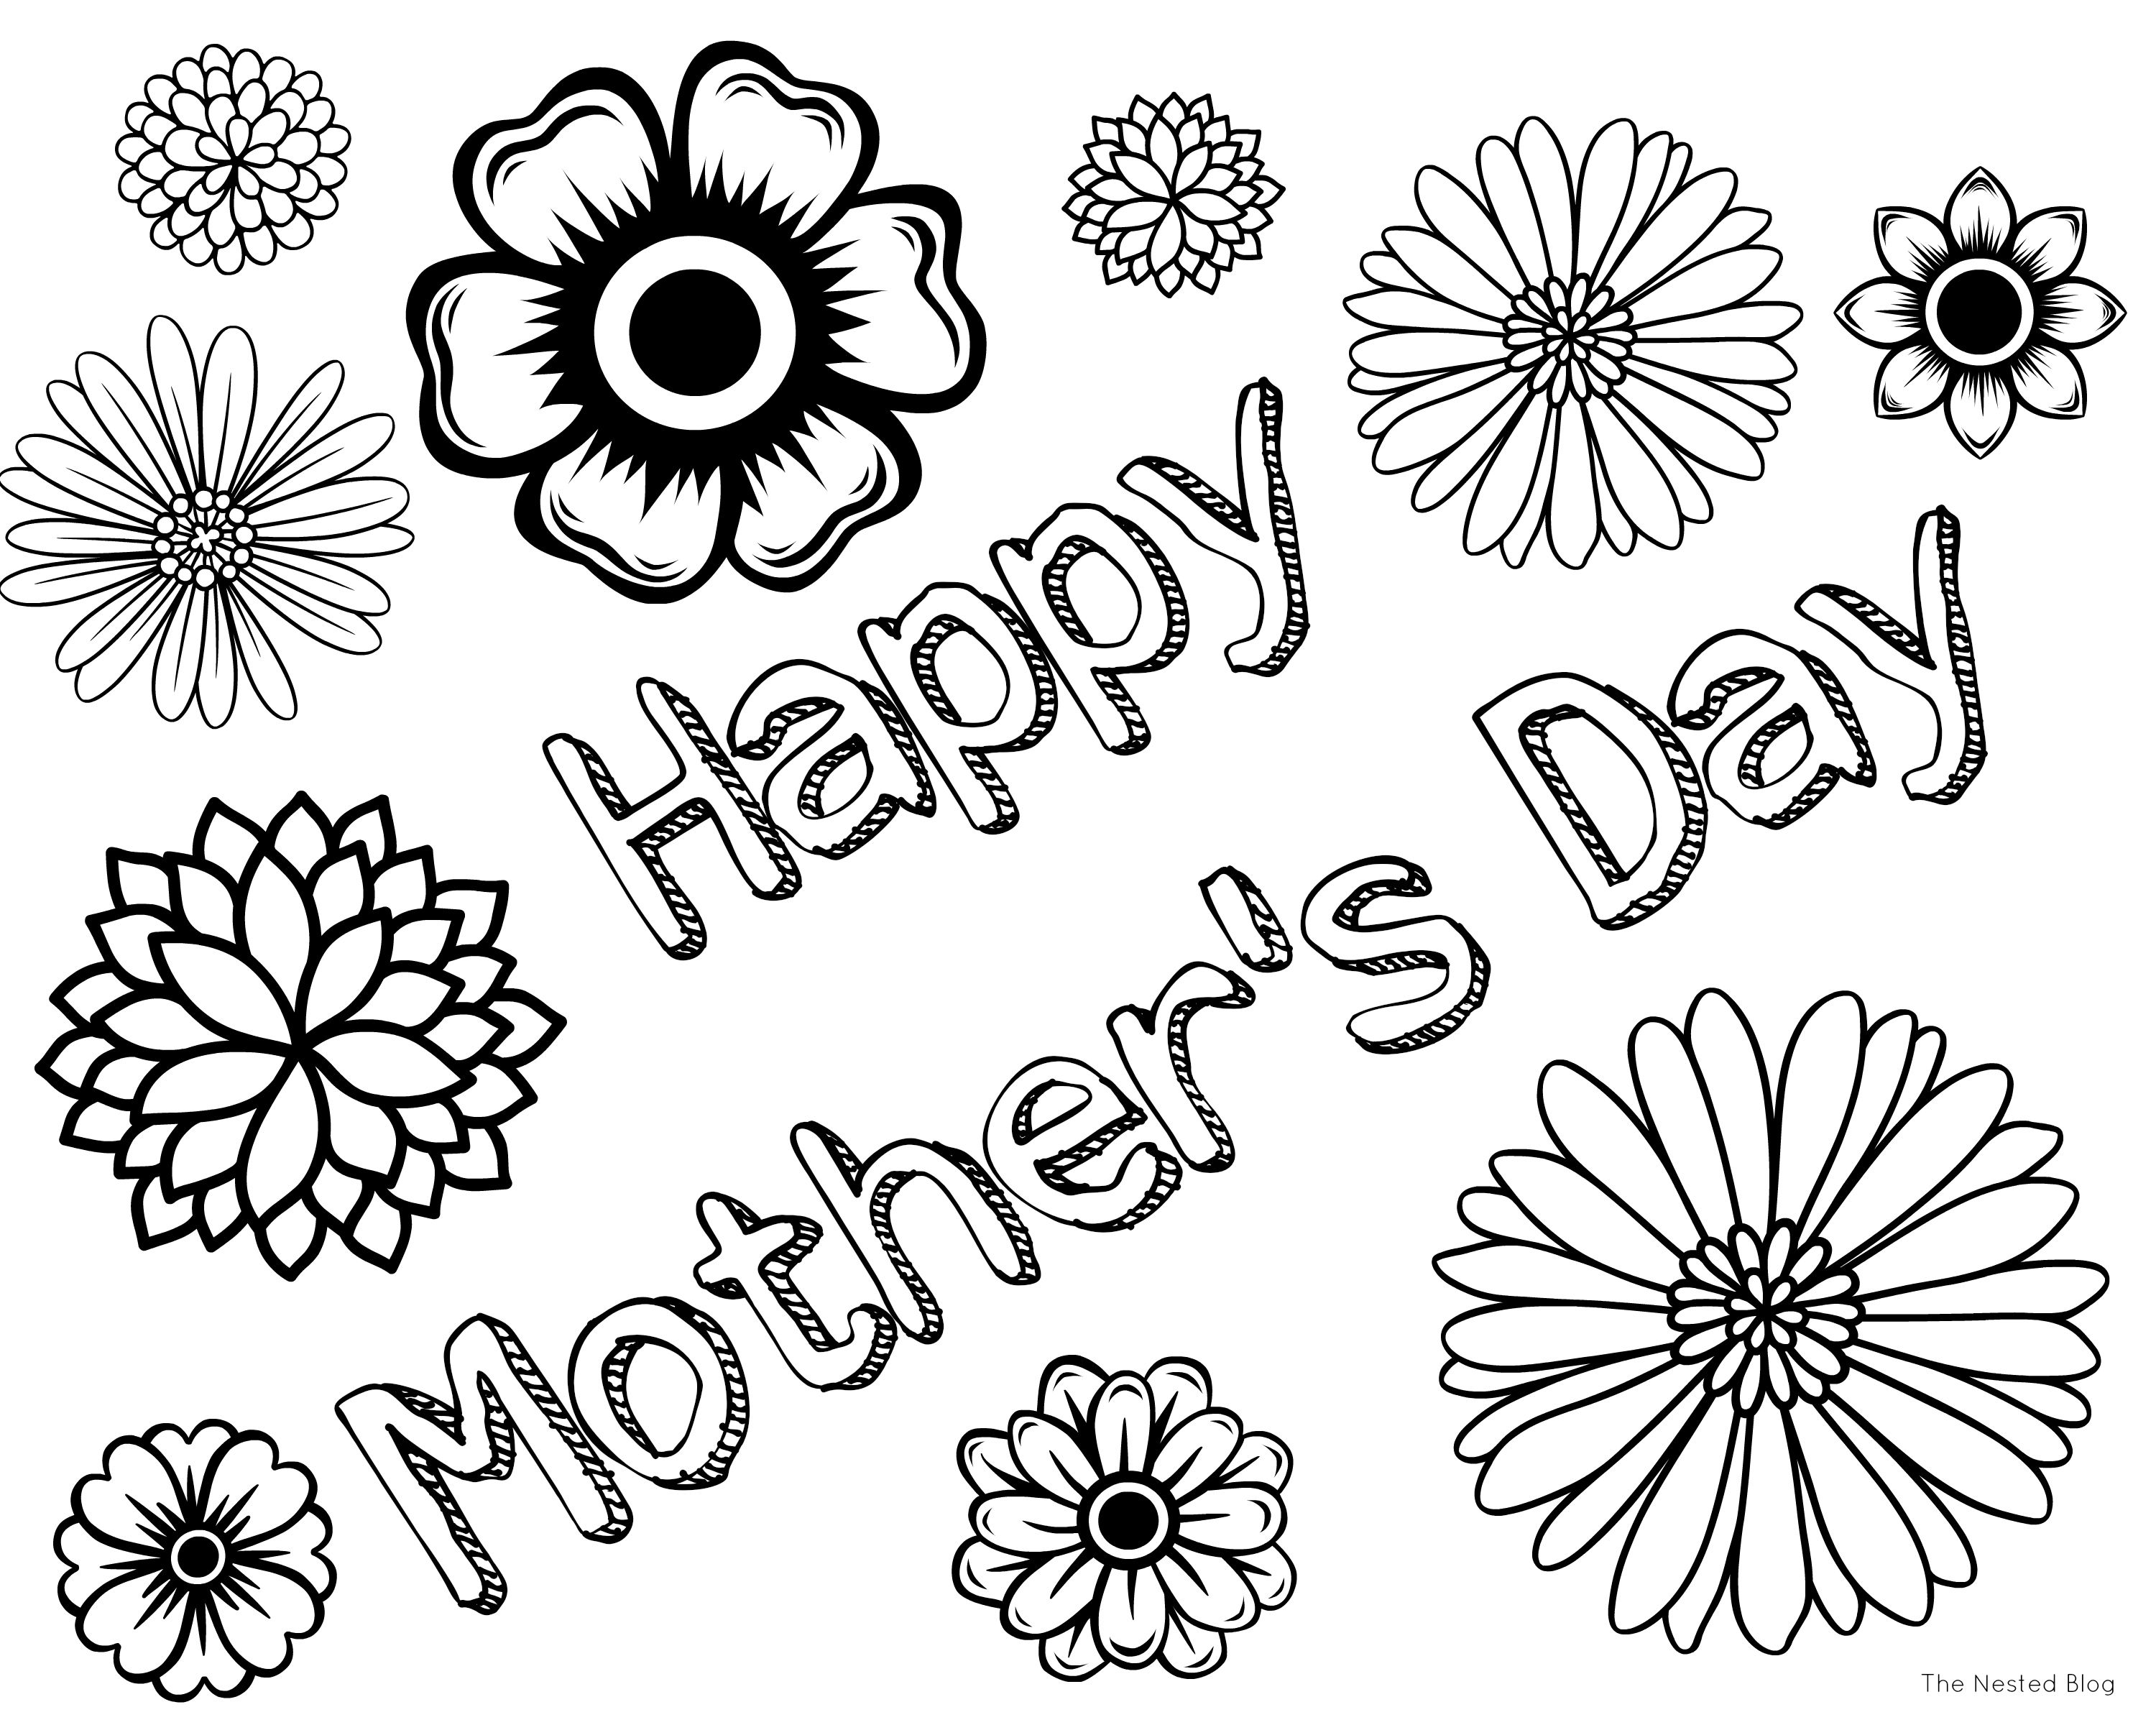 Exceptionnel Here We Are Providing You Mothers{*} Day Coloring Pages For Children, Kids,  Toddlers   Happy Motheru0027s Day Coloring Pages Mothers Day Coloring Pages  Images